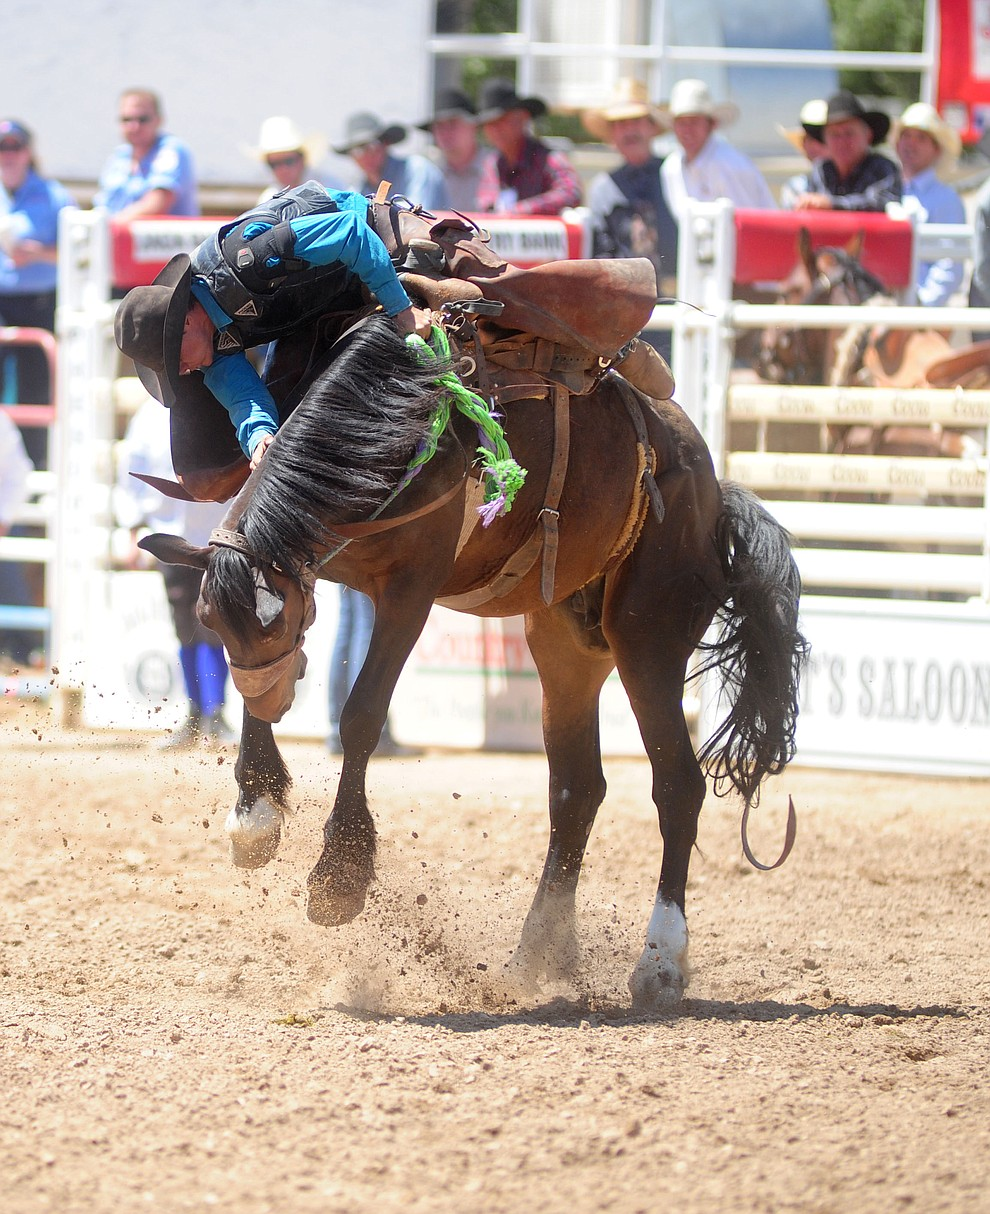 Jacob Phillips in the Cowpuncher's Ranch Bronc Riding during the 4th performance of the 2017 Prescott Frontier Days Rodeo at the Prescott Rodeo Grounds Saturday, July 1.  (Les Stukenberg/Courier)